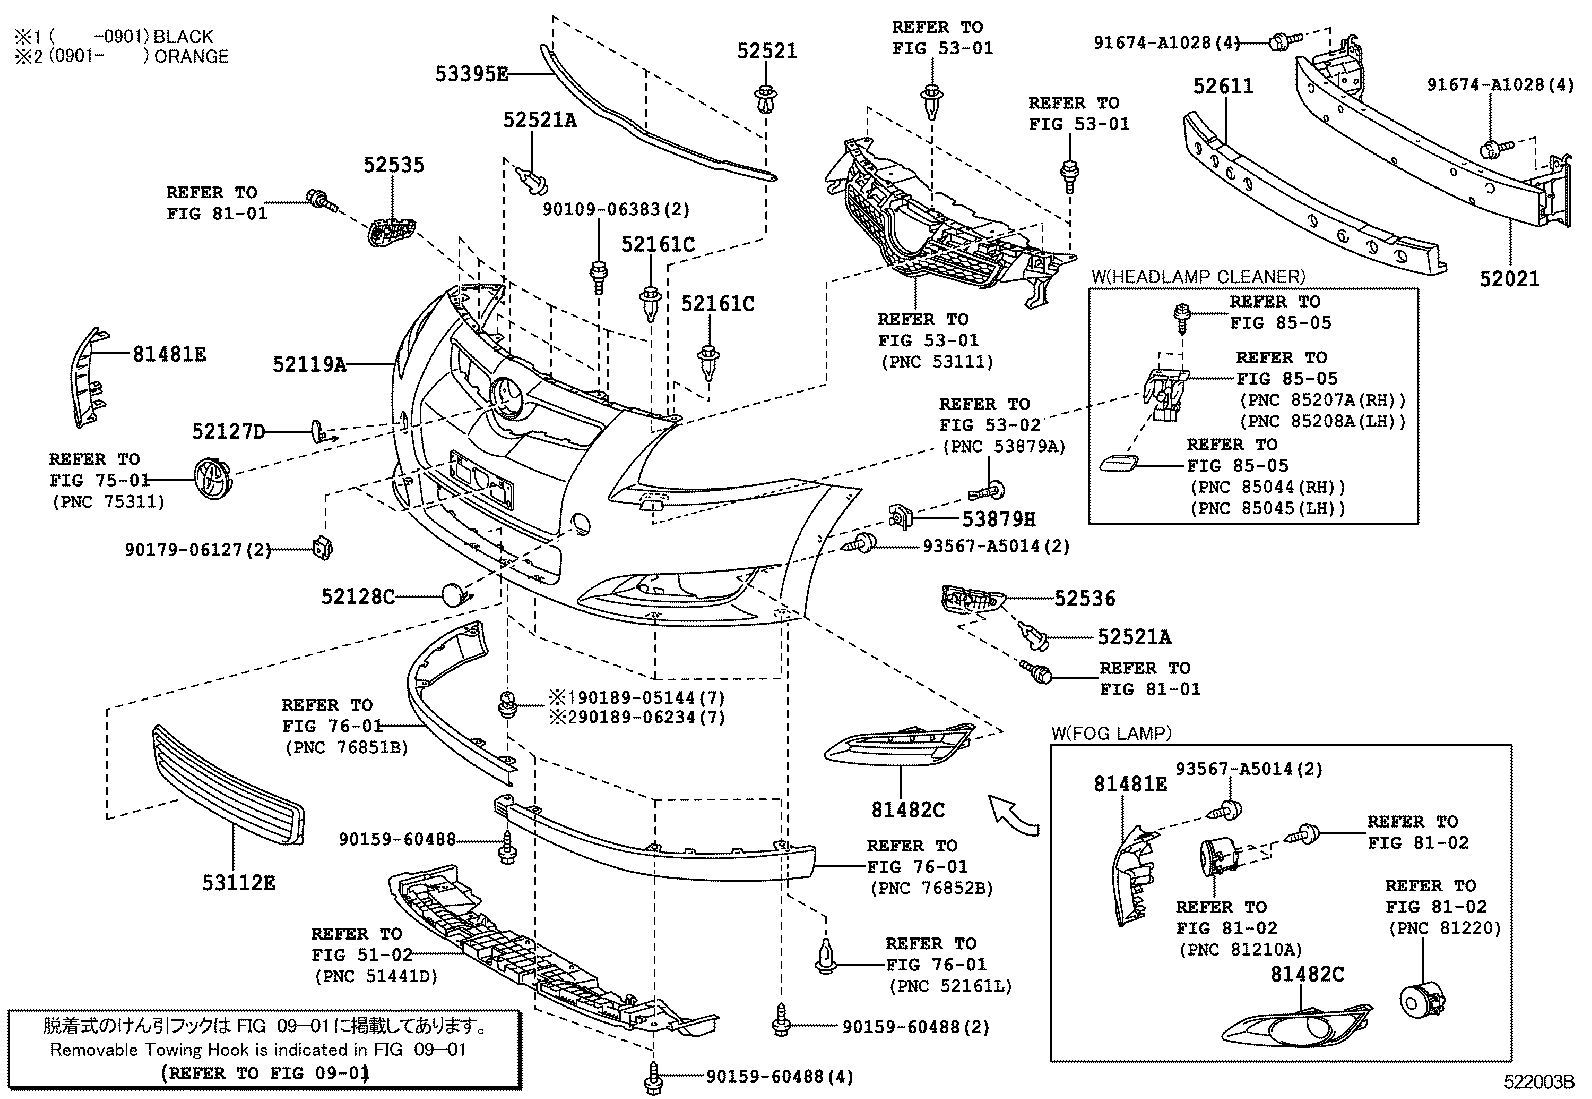 Toyota Yaris Tundra Body Parts moreover Oem Toyota Ta A Parts besides Toyota Camry Bumper Parts additionally Lexus Ls400 Rear Bushings together with 2014 Toyota Tundra Body Parts Diagram. on 2007 toyota ta a rear bumper parts diagram